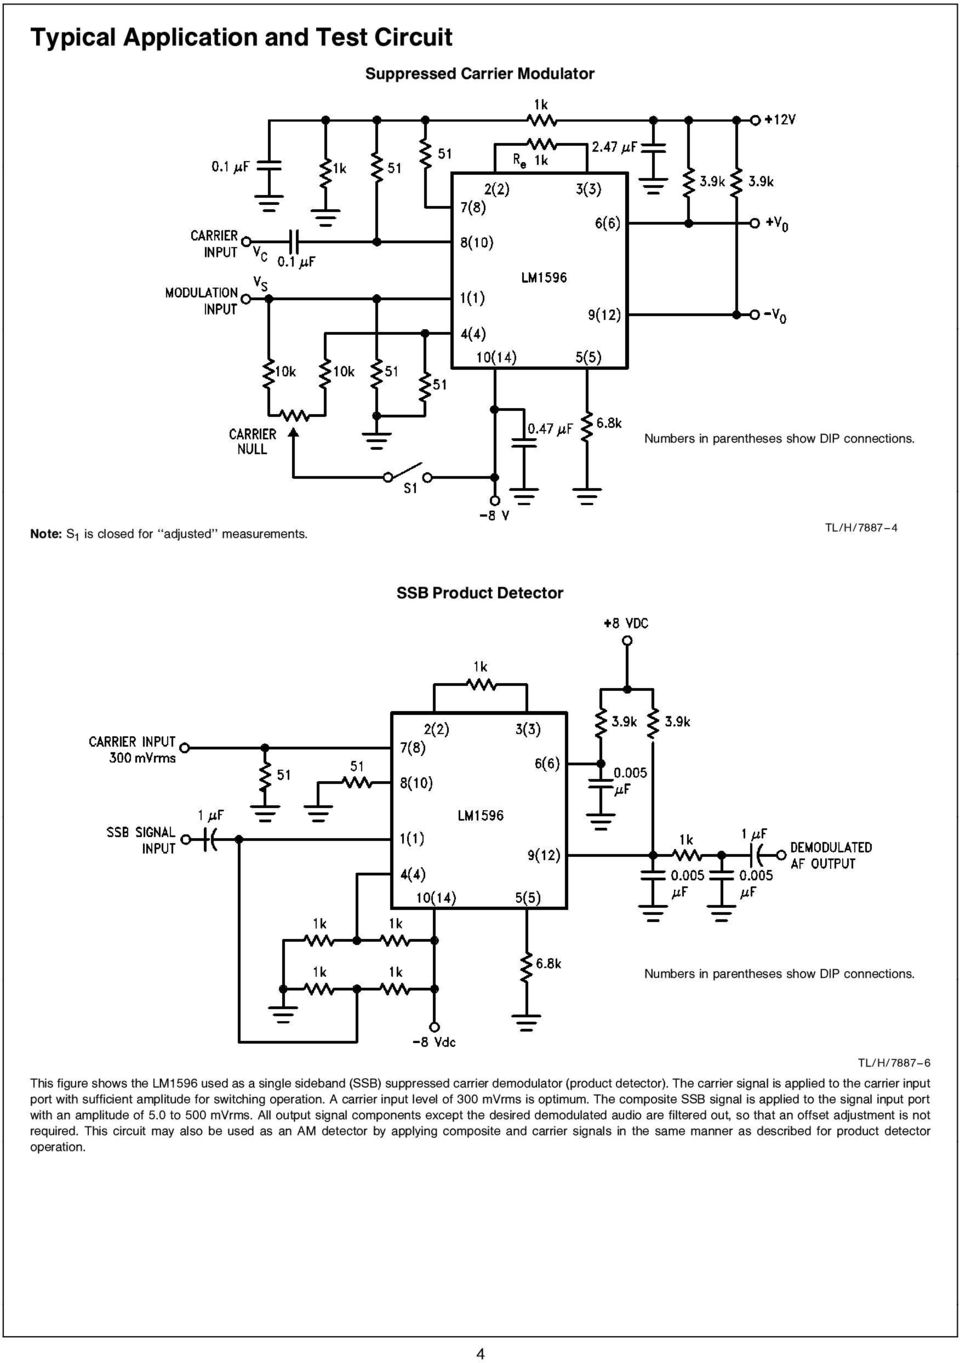 Lm1596 Lm1496 Balanced Modulator Demodulator Pdf Am Modulation And Demodulation Circuit Carrier Input Port With Sufficient Amplitude For Switching Operation A Level Of 300 Mvrms